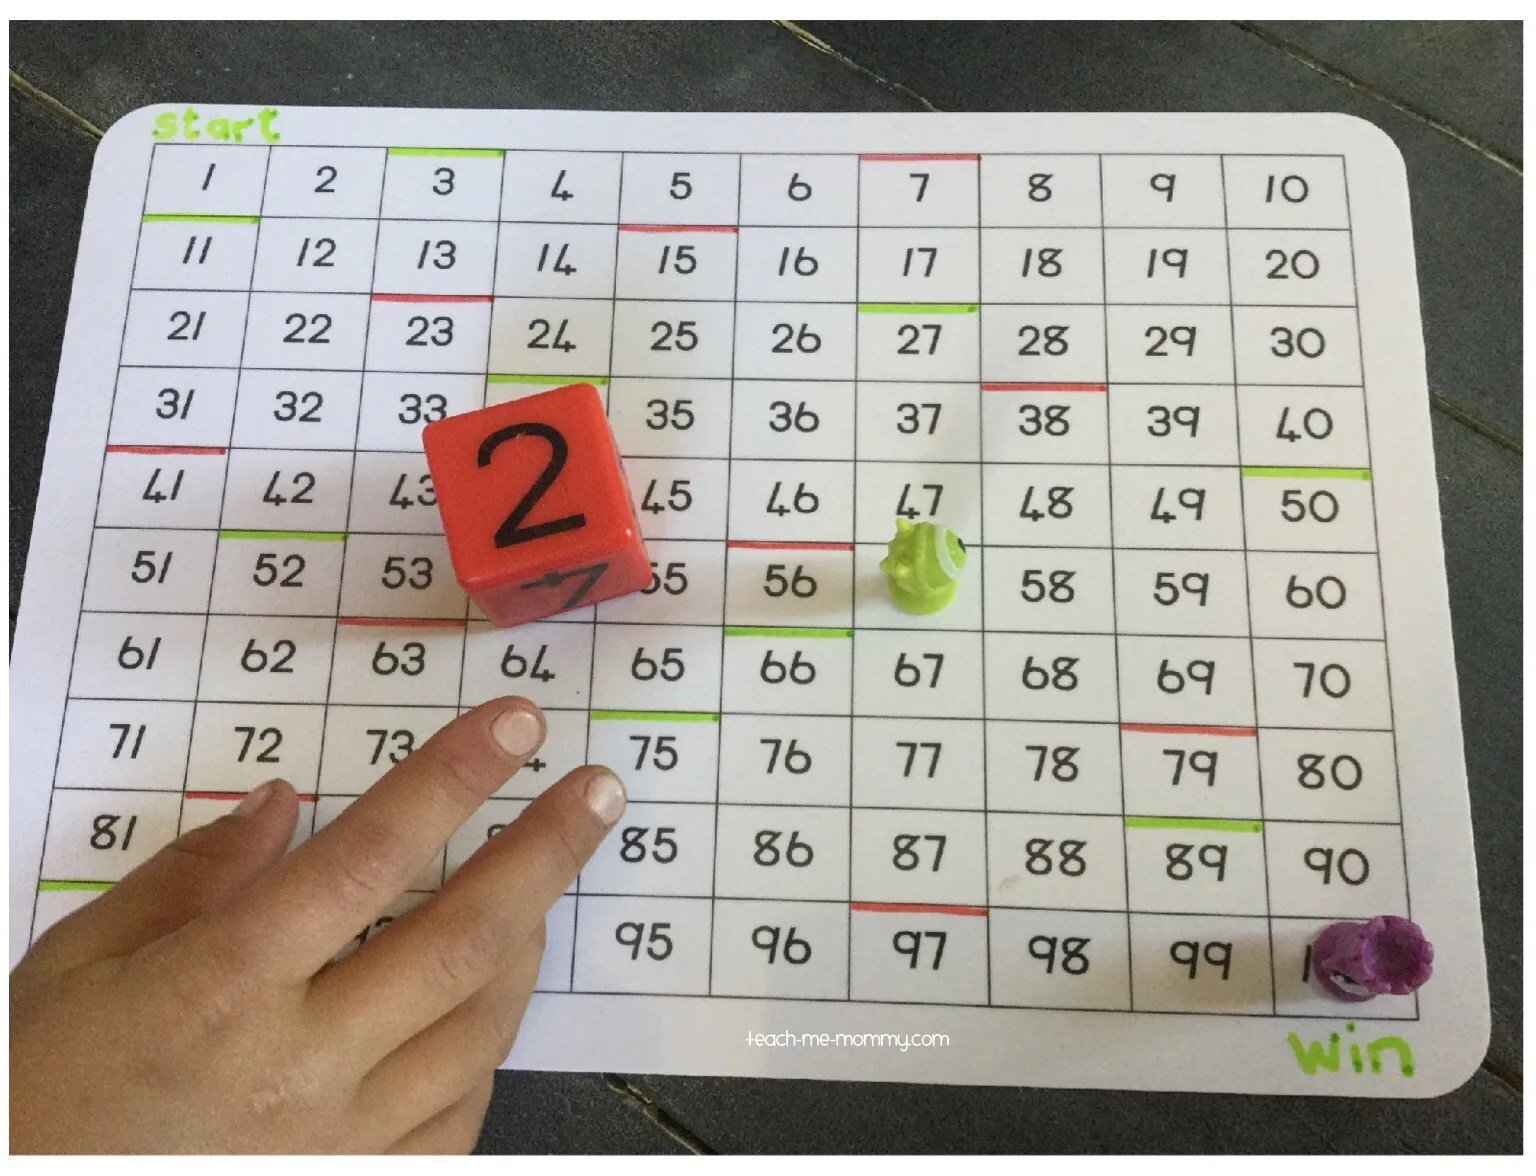 100 Chart Race To Win Counting Game